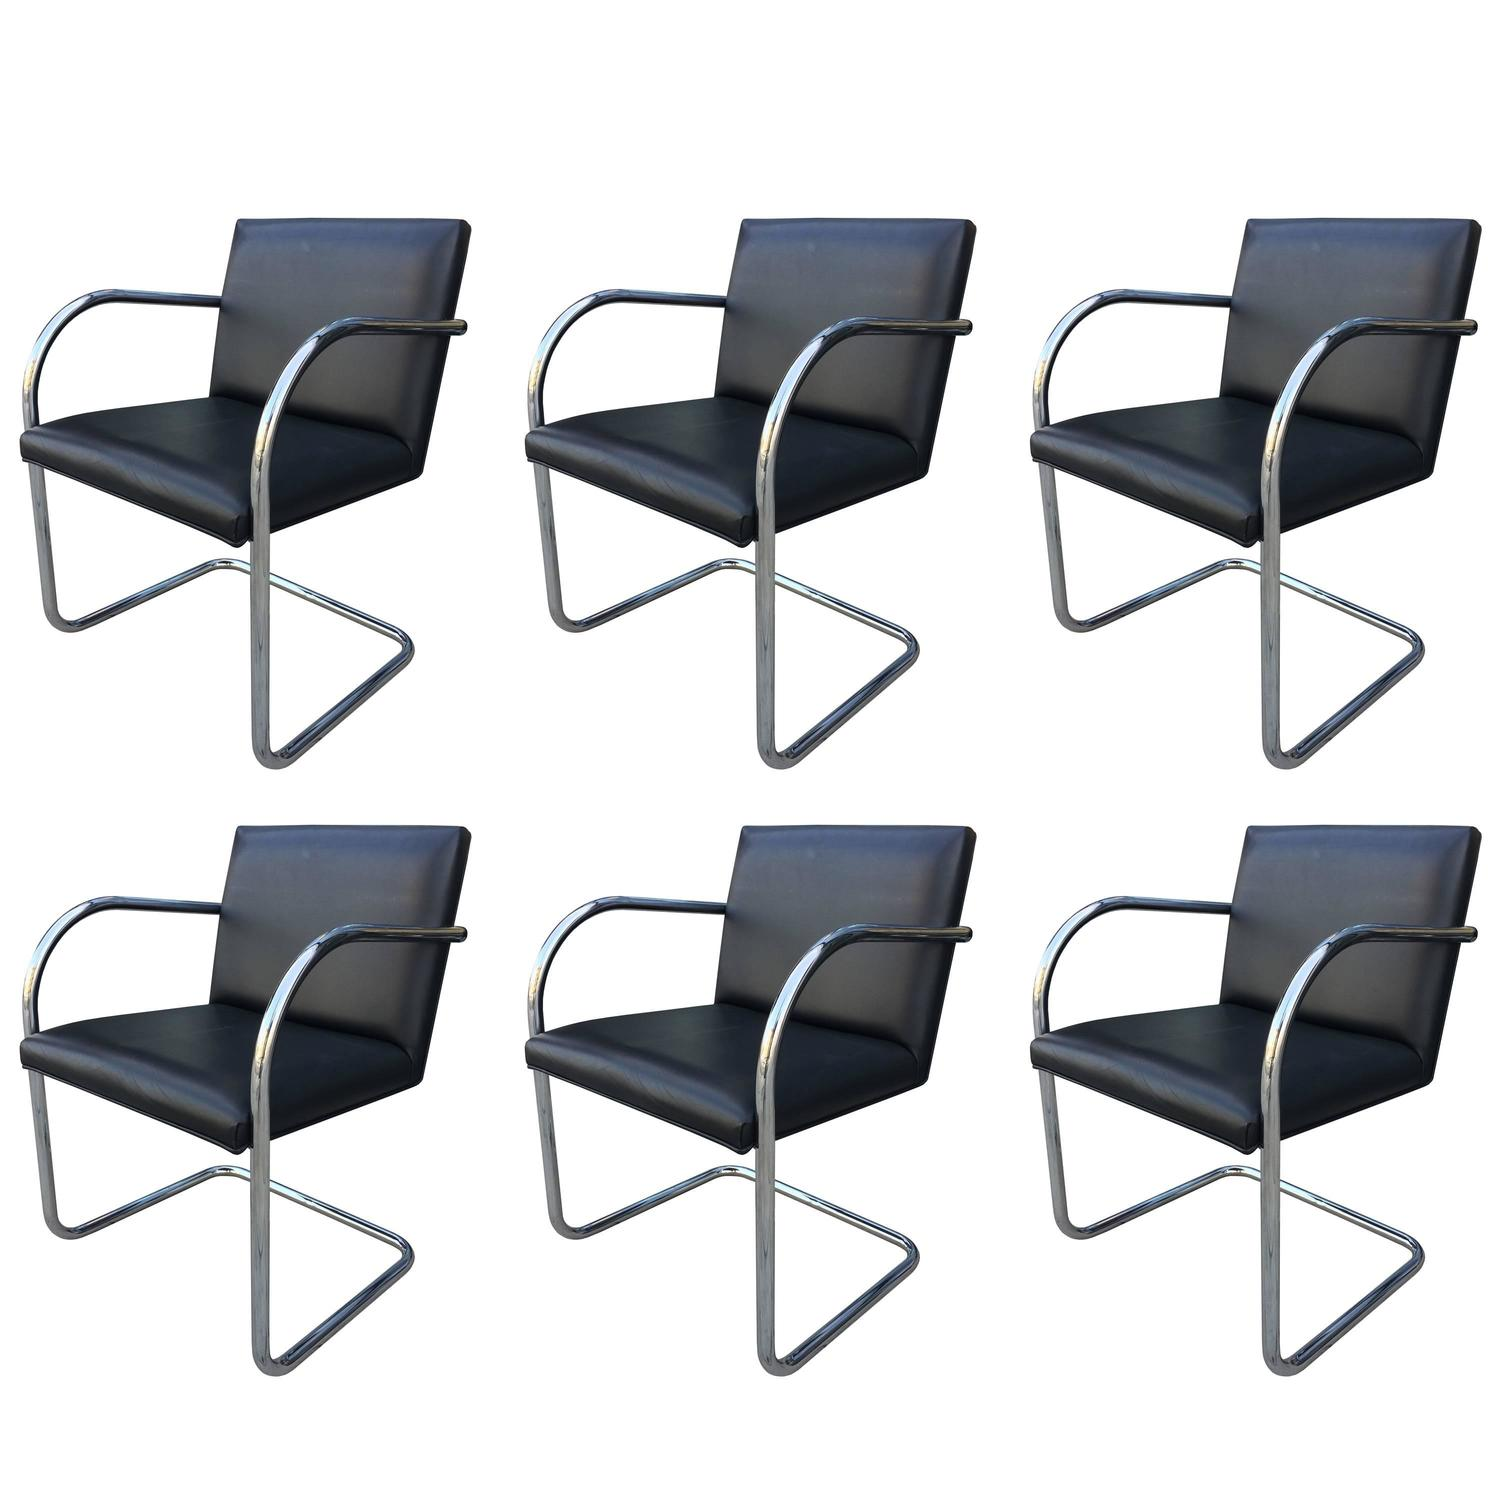 Set of Six Brno Chairs by Mies Van Der Rohe Manufactured by Gordon